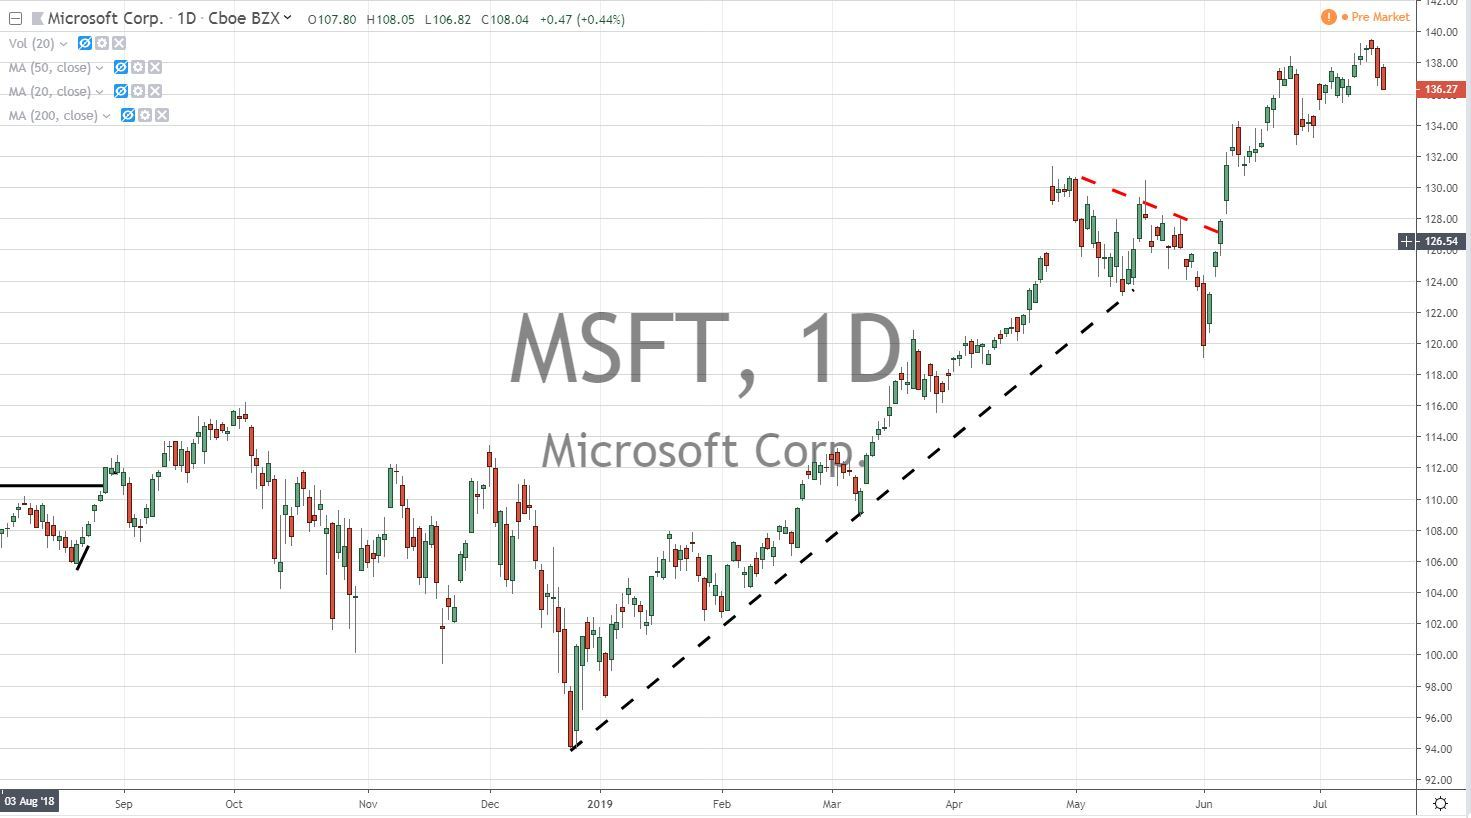 Microspft Corp MSFT Stock Chart 7.18.19 Before Earnings